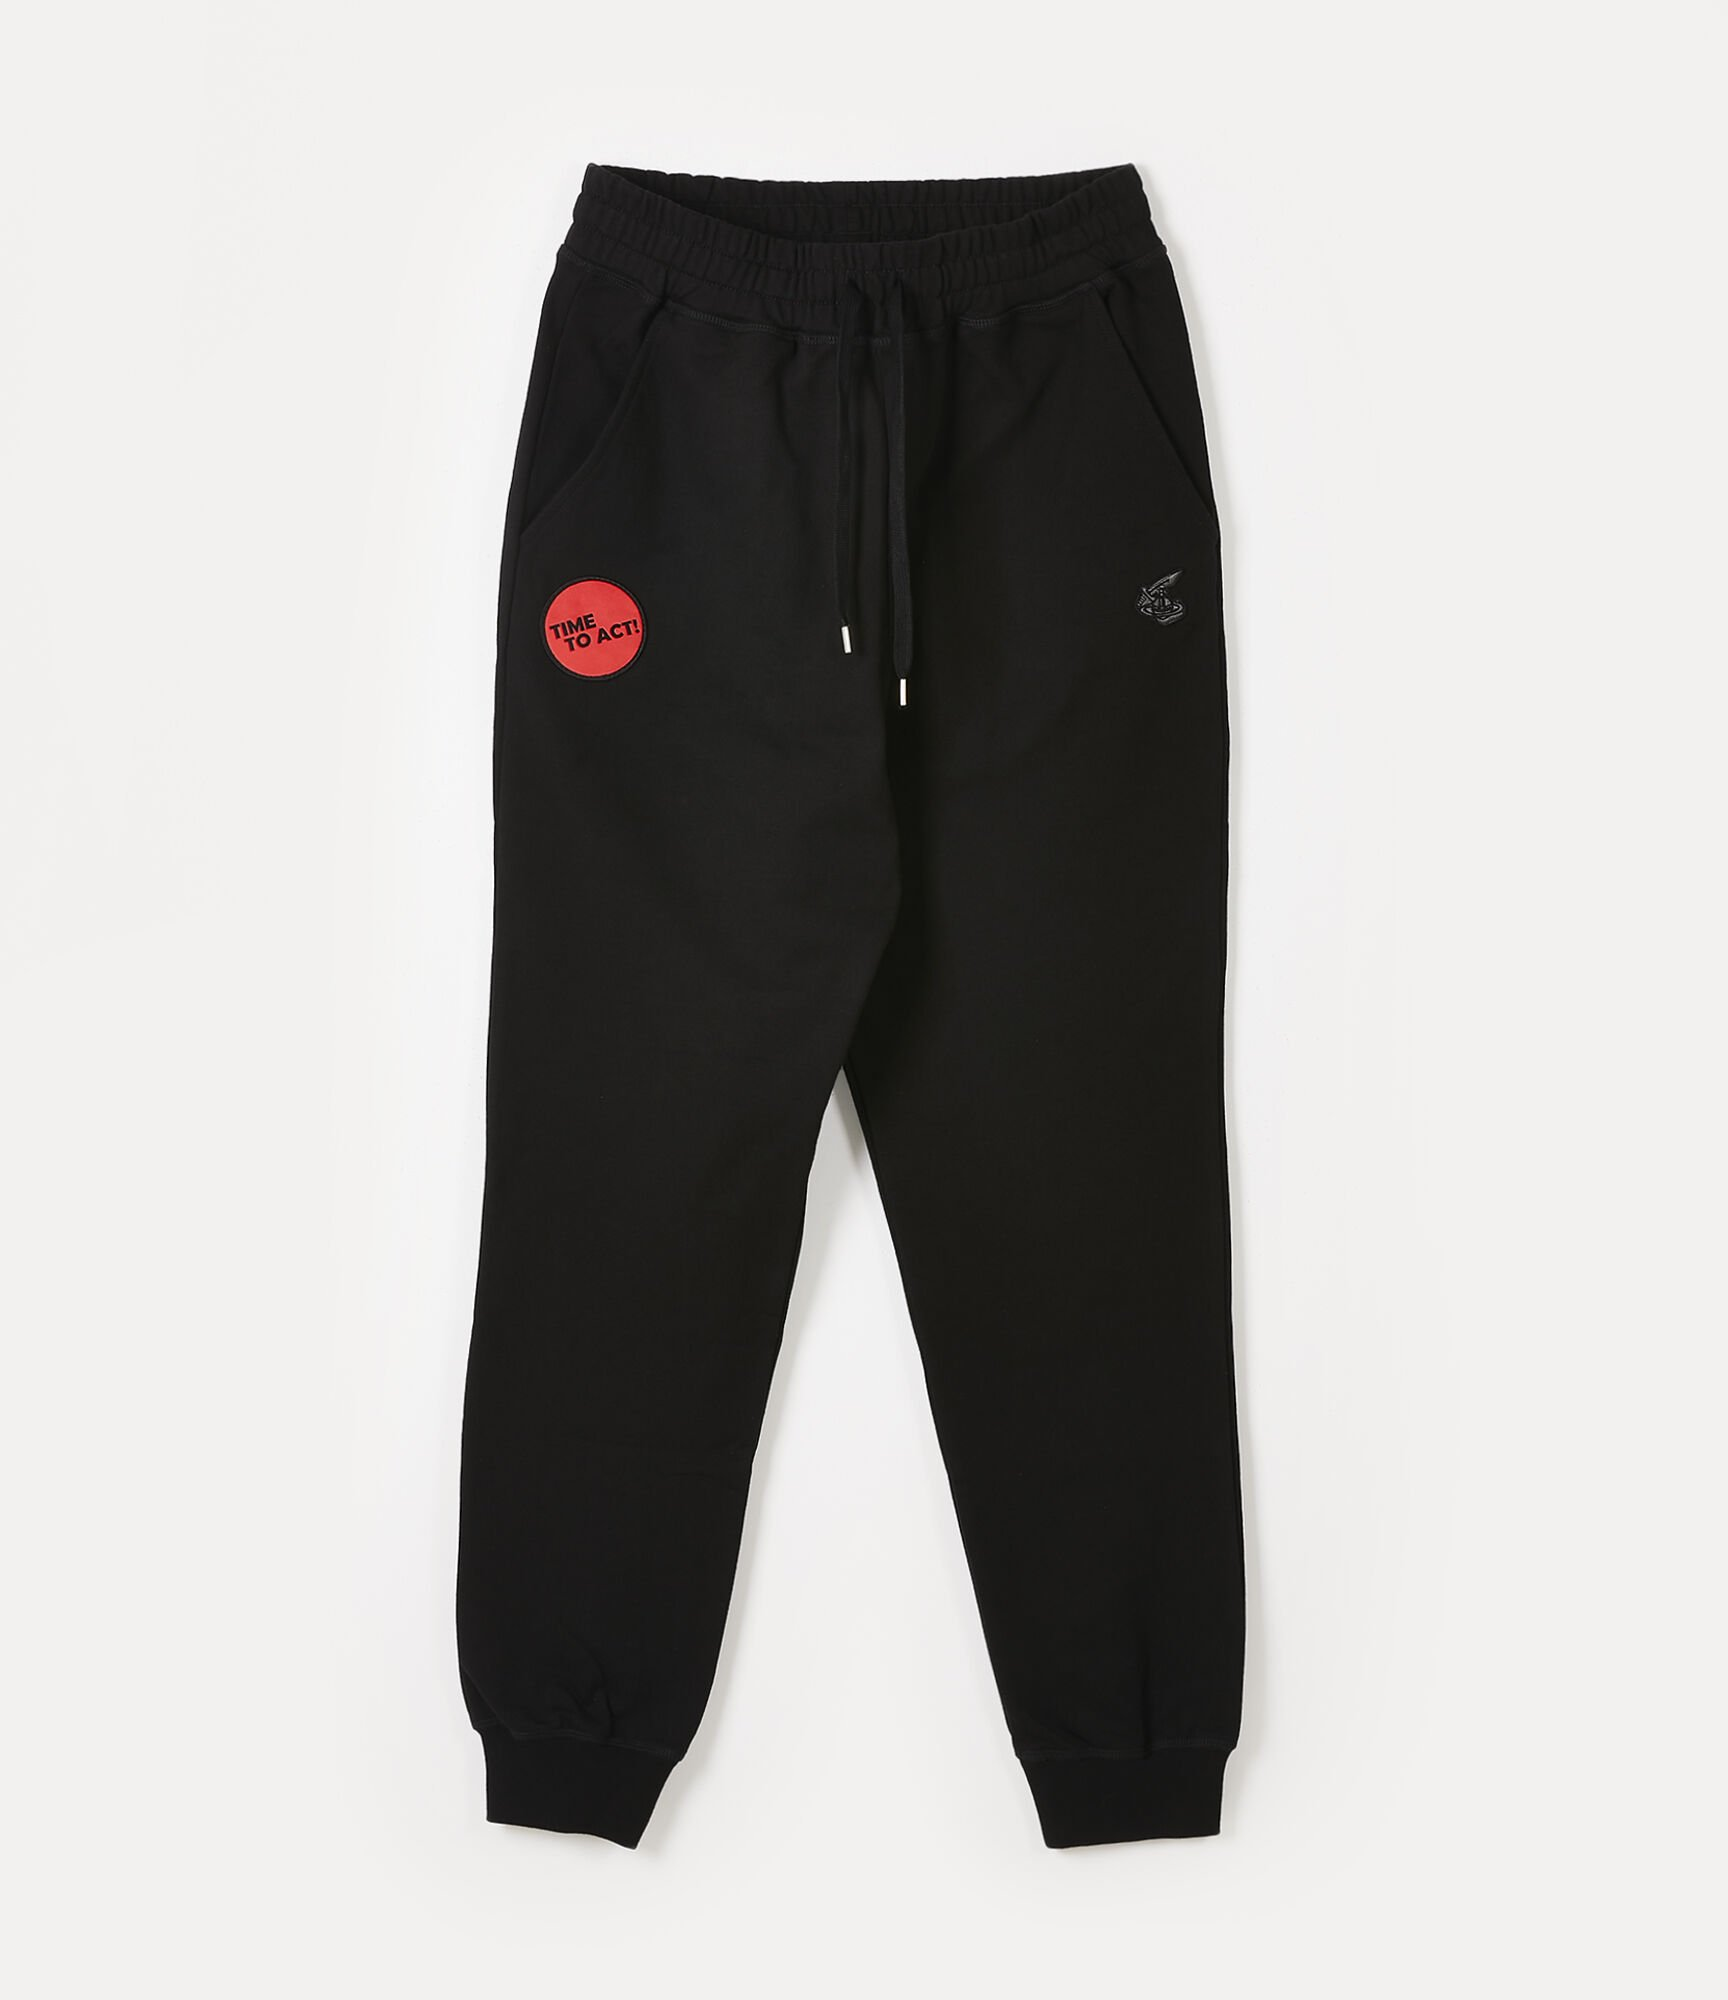 Vivienne Westwood CLASSIC TRACKSUIT BOTTOMS TIME TO ACT BLACK